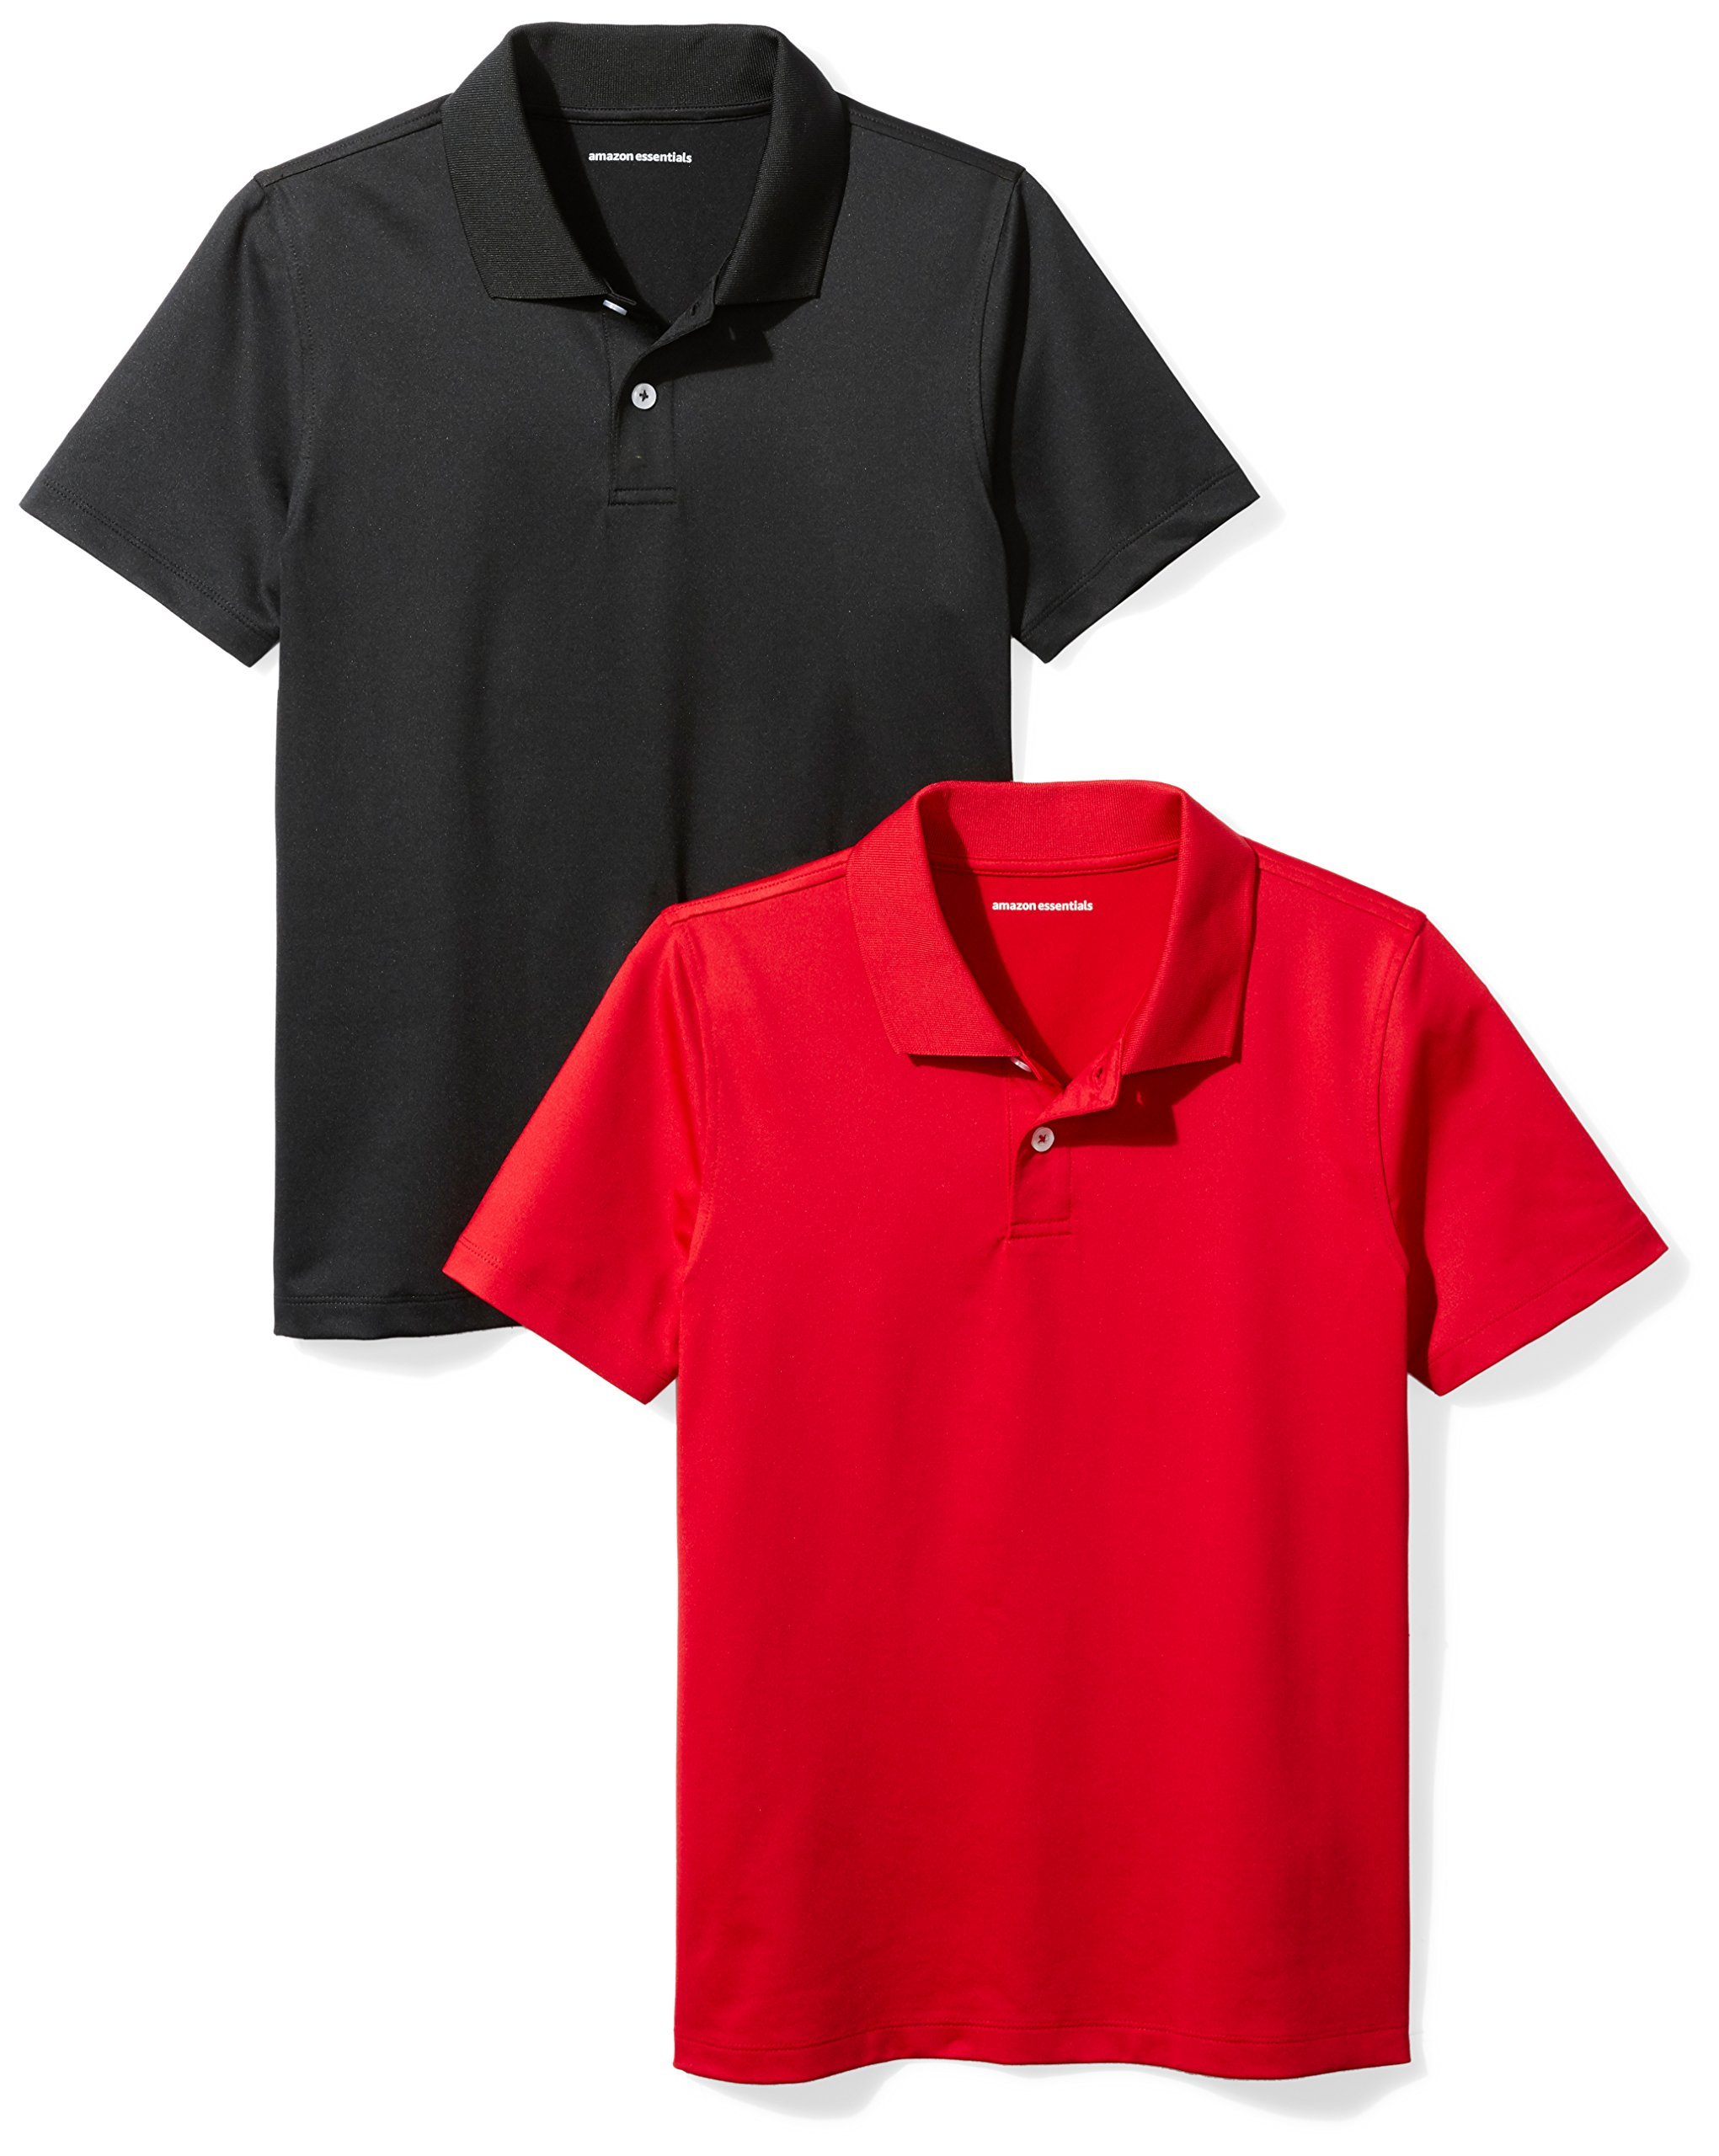 Amazon Essentials Boys' 2-Pack Performance Polo, Black/Red, L (10)